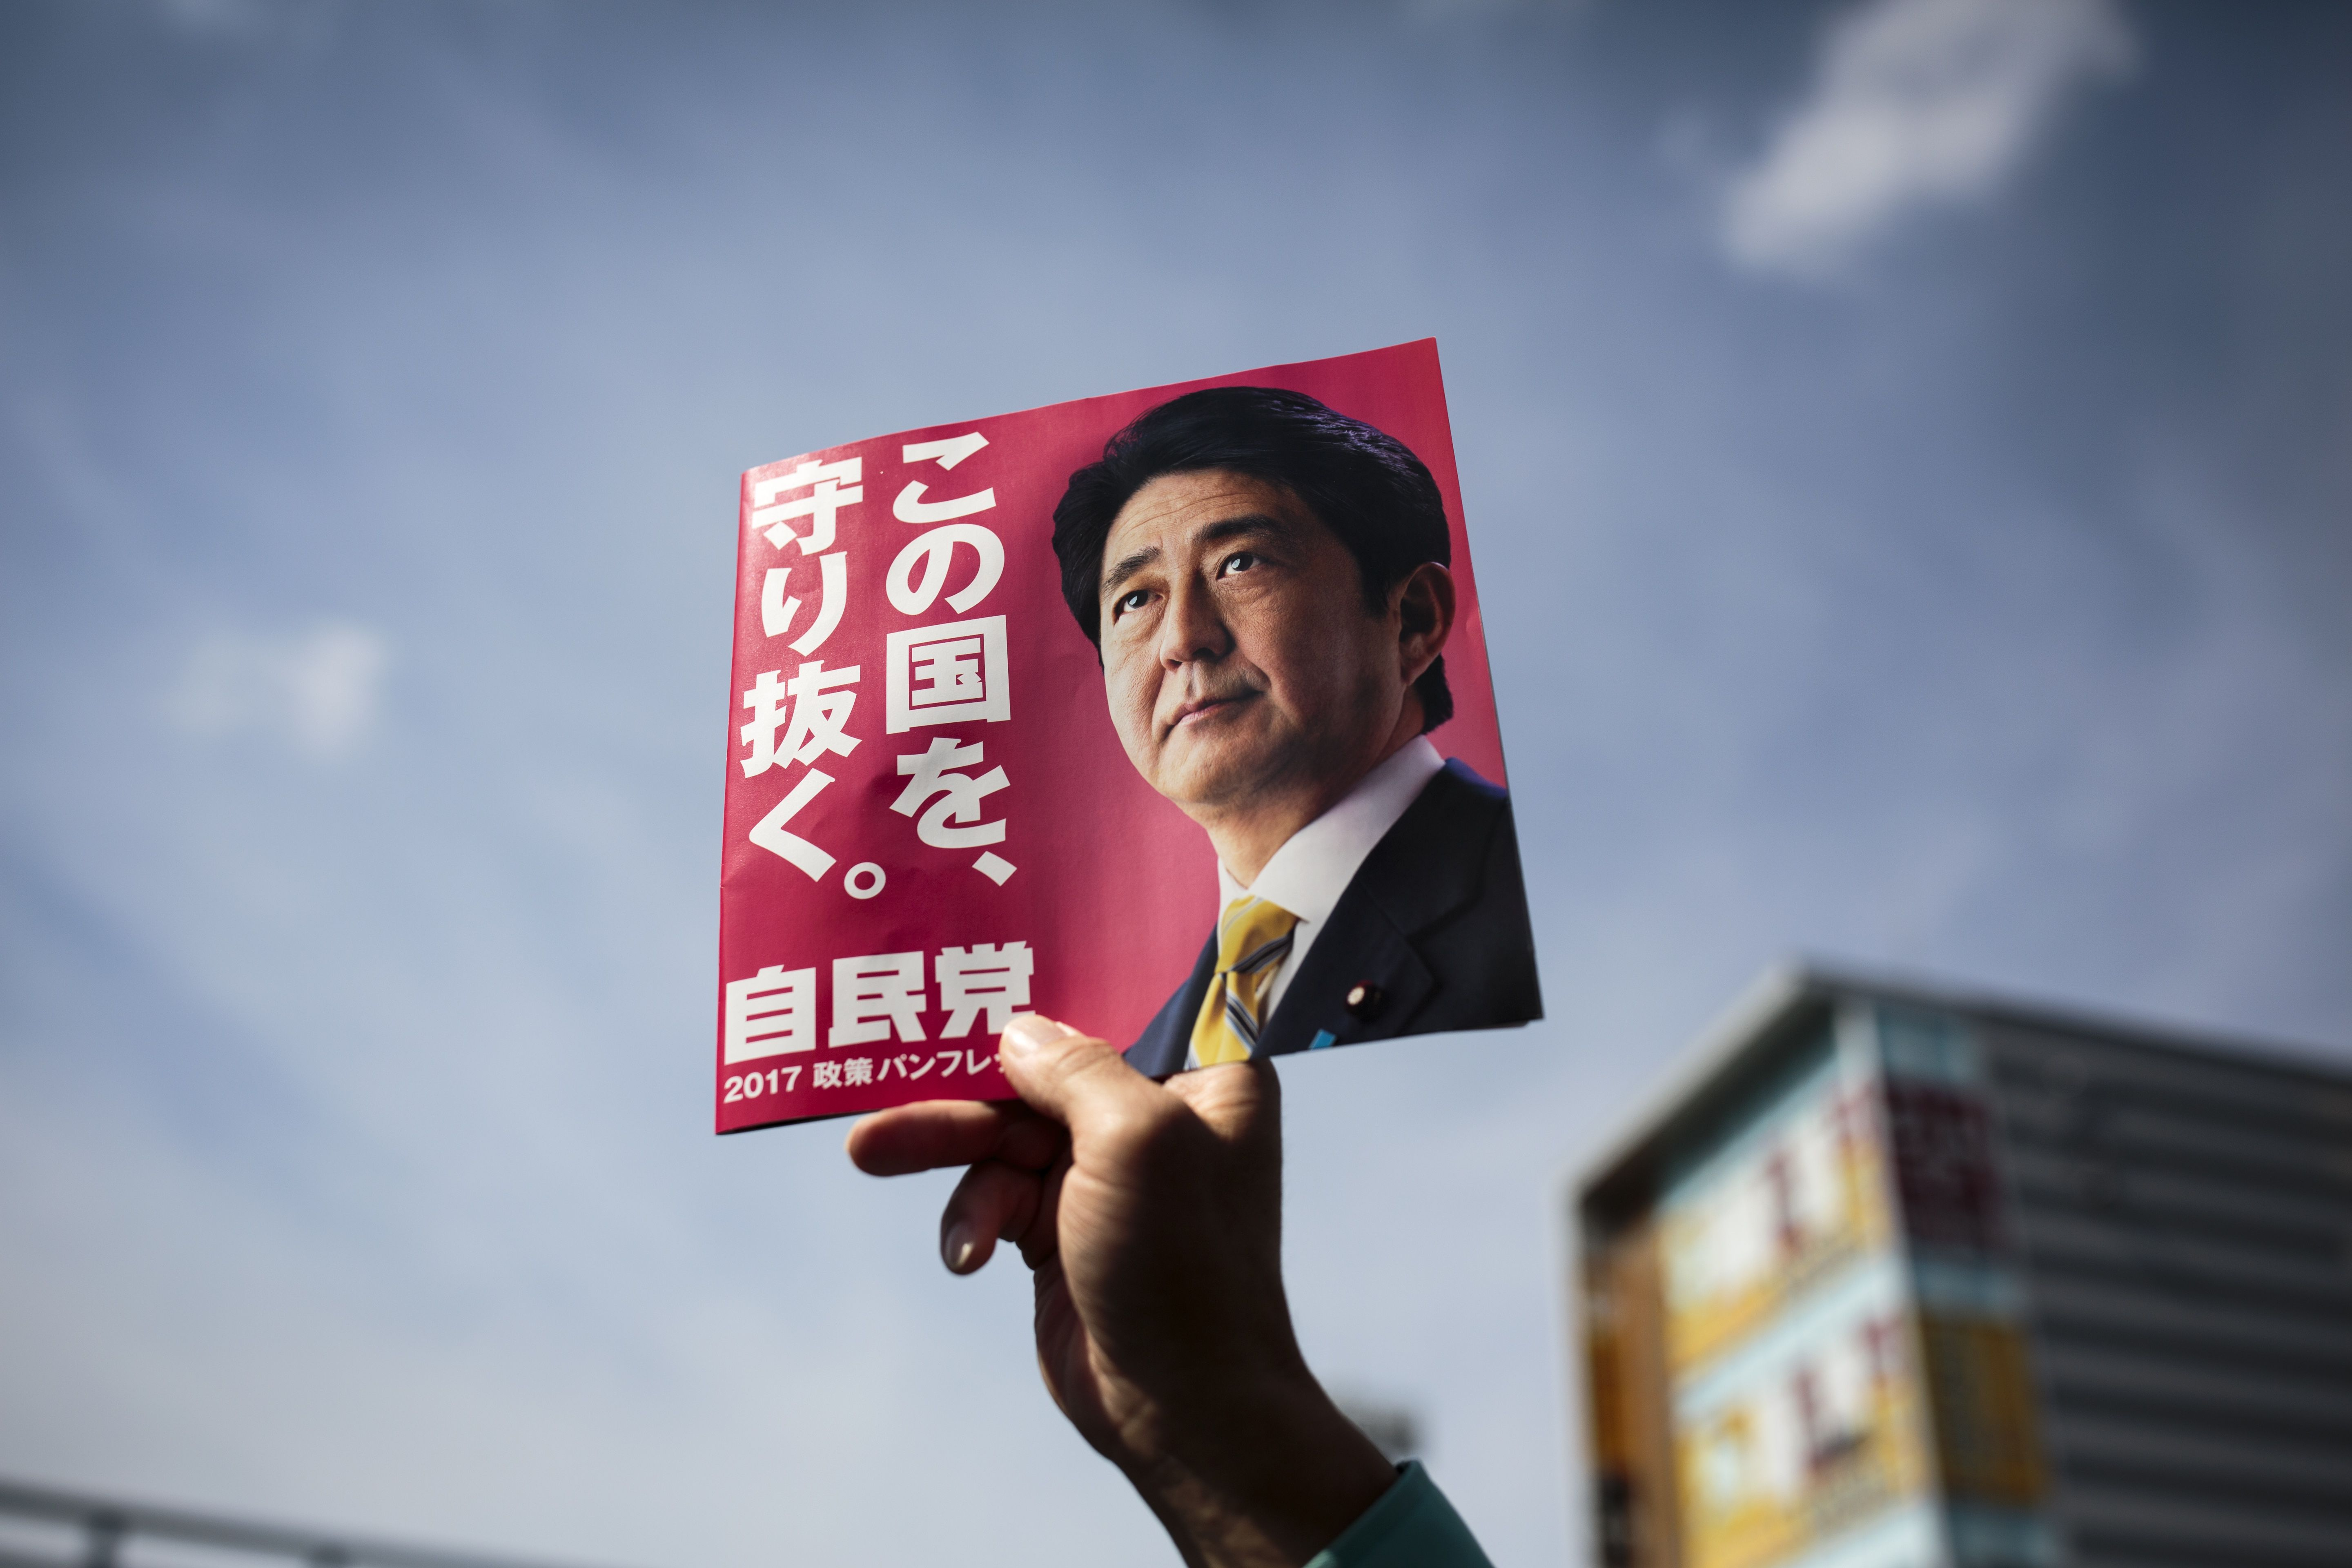 In this picture taken on October 18, 2017, a man holds an electoral leaflet showing Japan's Prime Minister and ruling Liberal Democratic Party (LDP) president Shinzo Abe during an election campaign in Saitama.